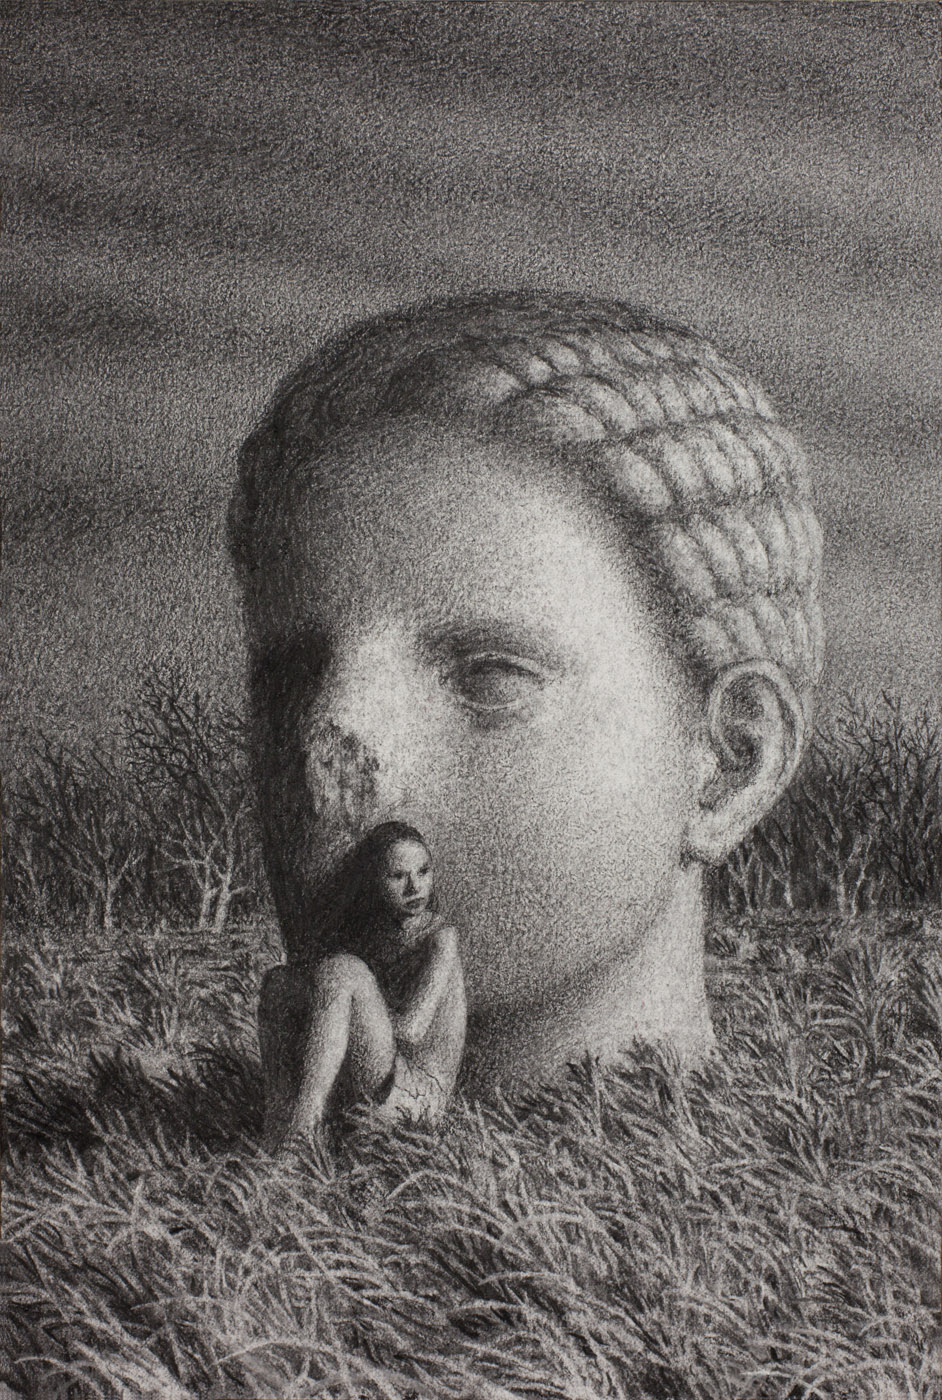 Vigil 8 , charcoal on paper, 15 x 10 in / 38 x 25 cm, 2013